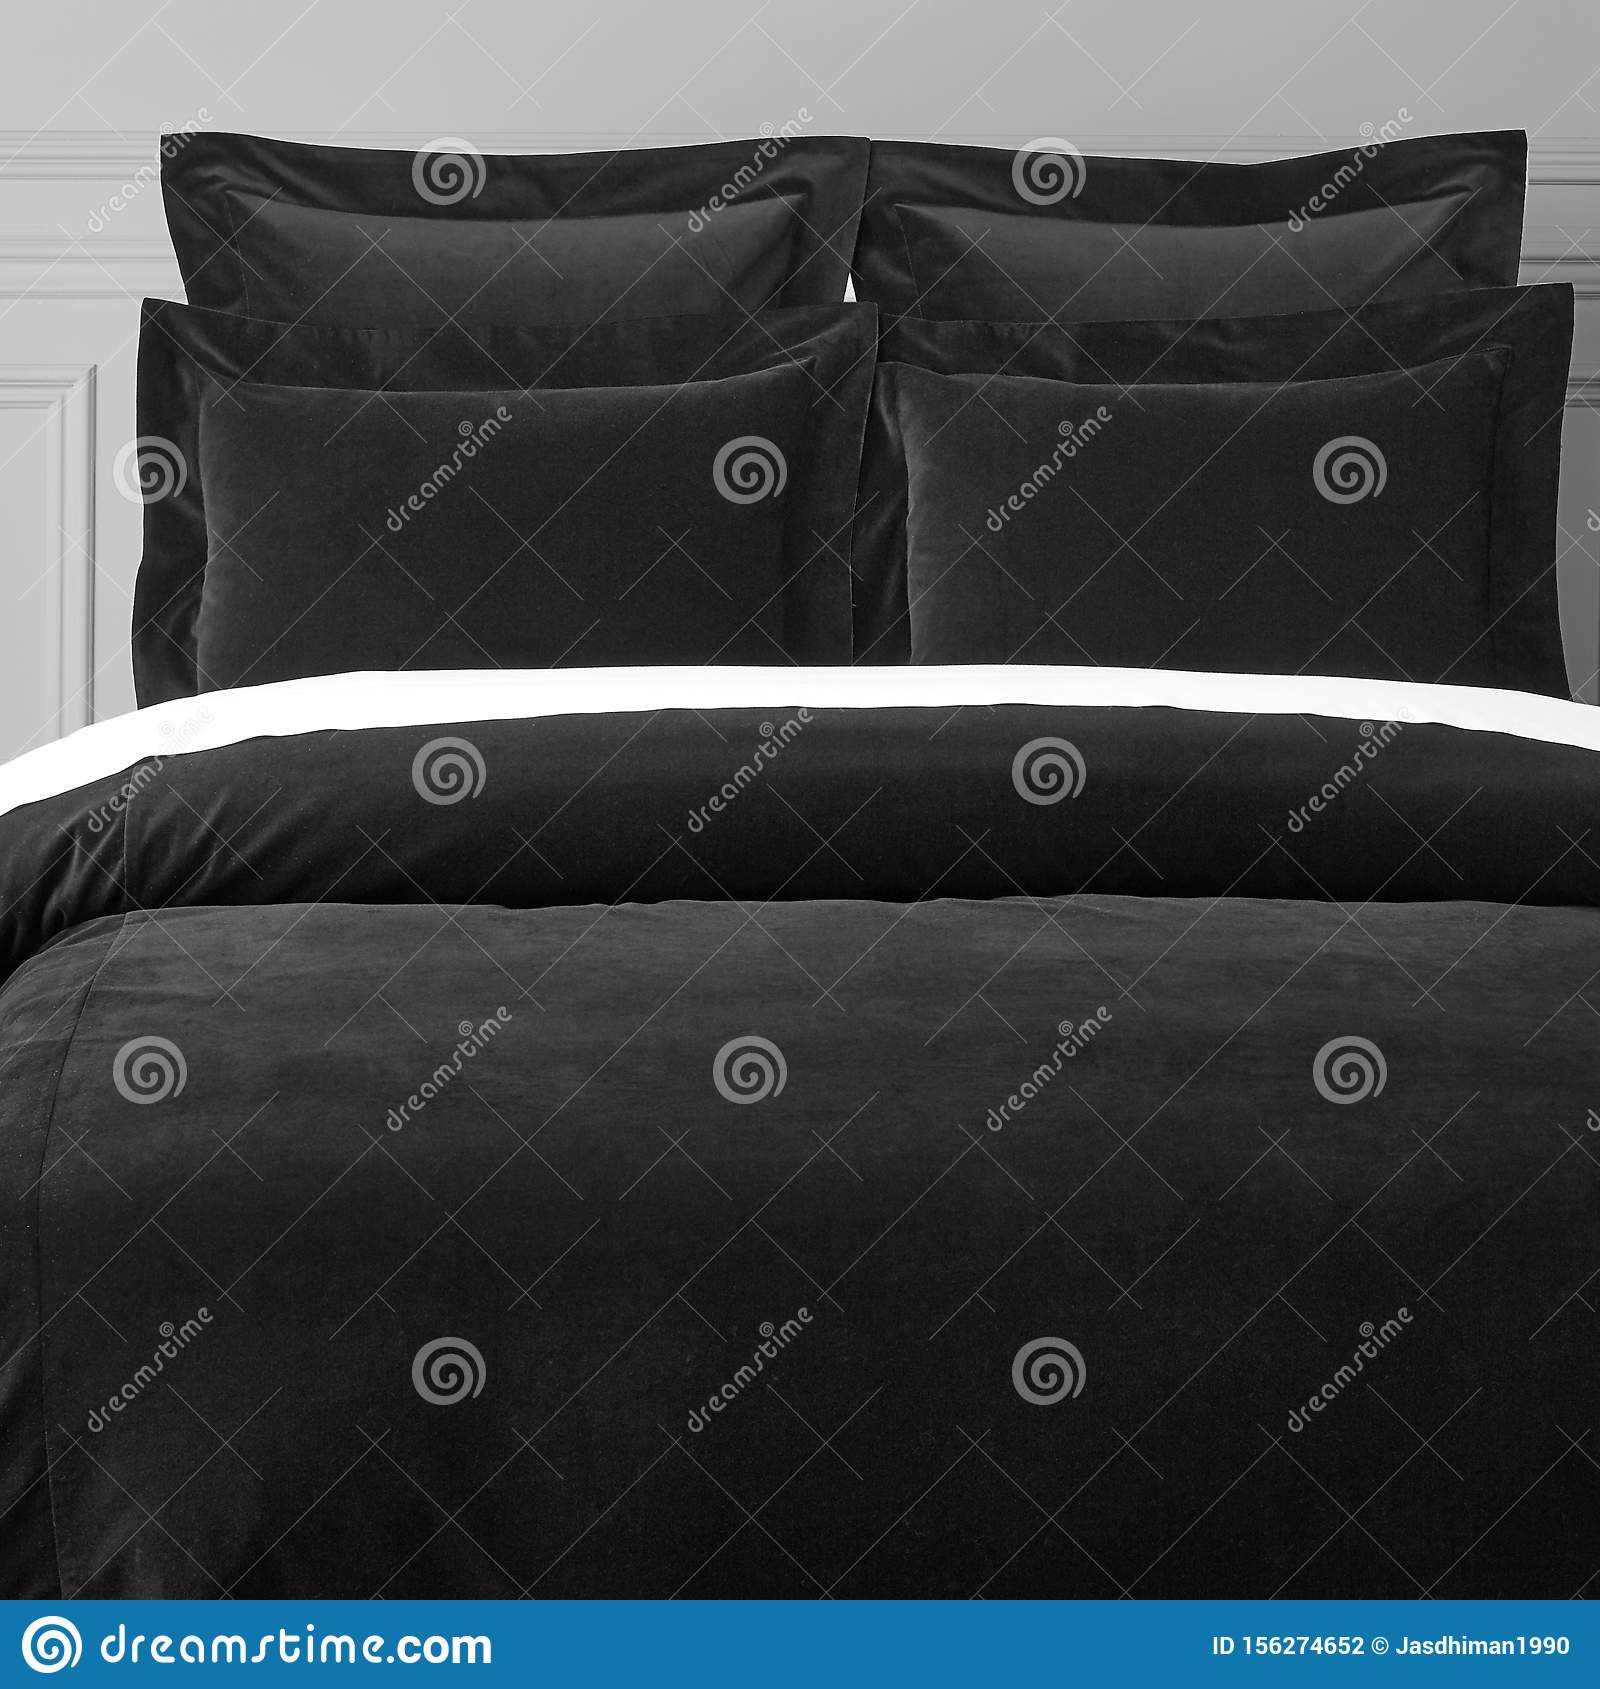 Black Bed Sheets And Pillows Stock Photo Image Of Dark Bedding 156274652